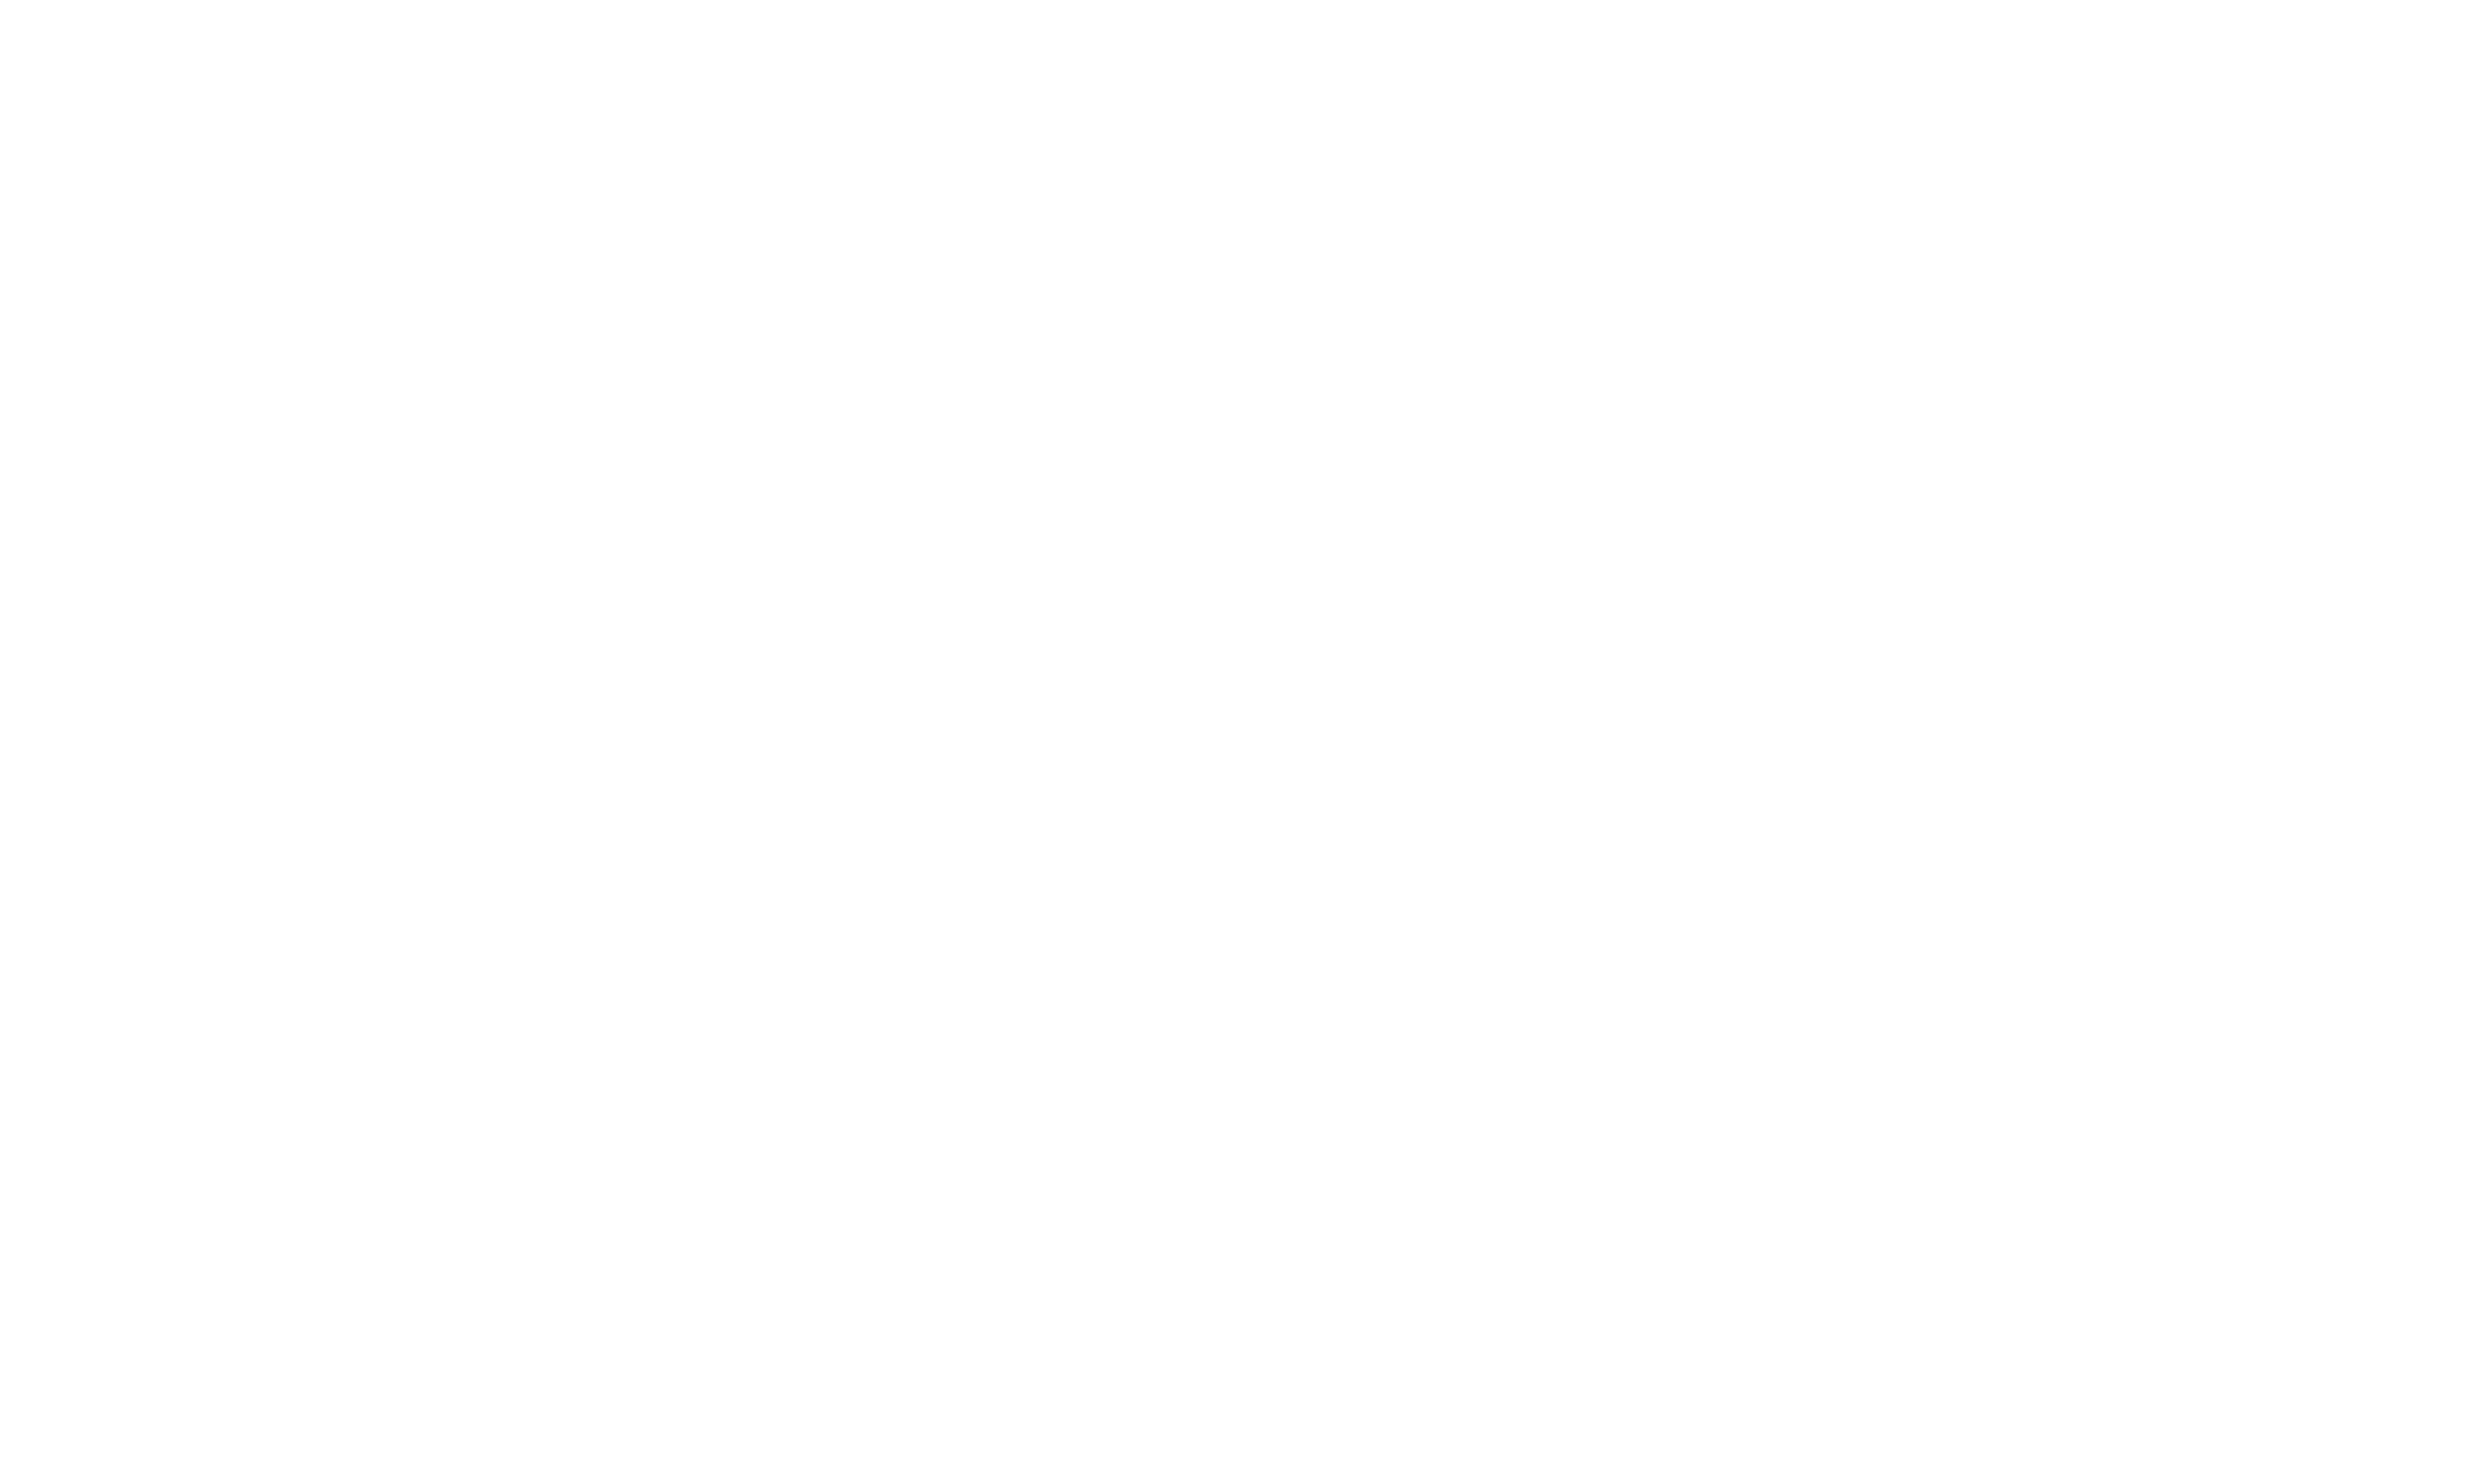 Southern Door Company